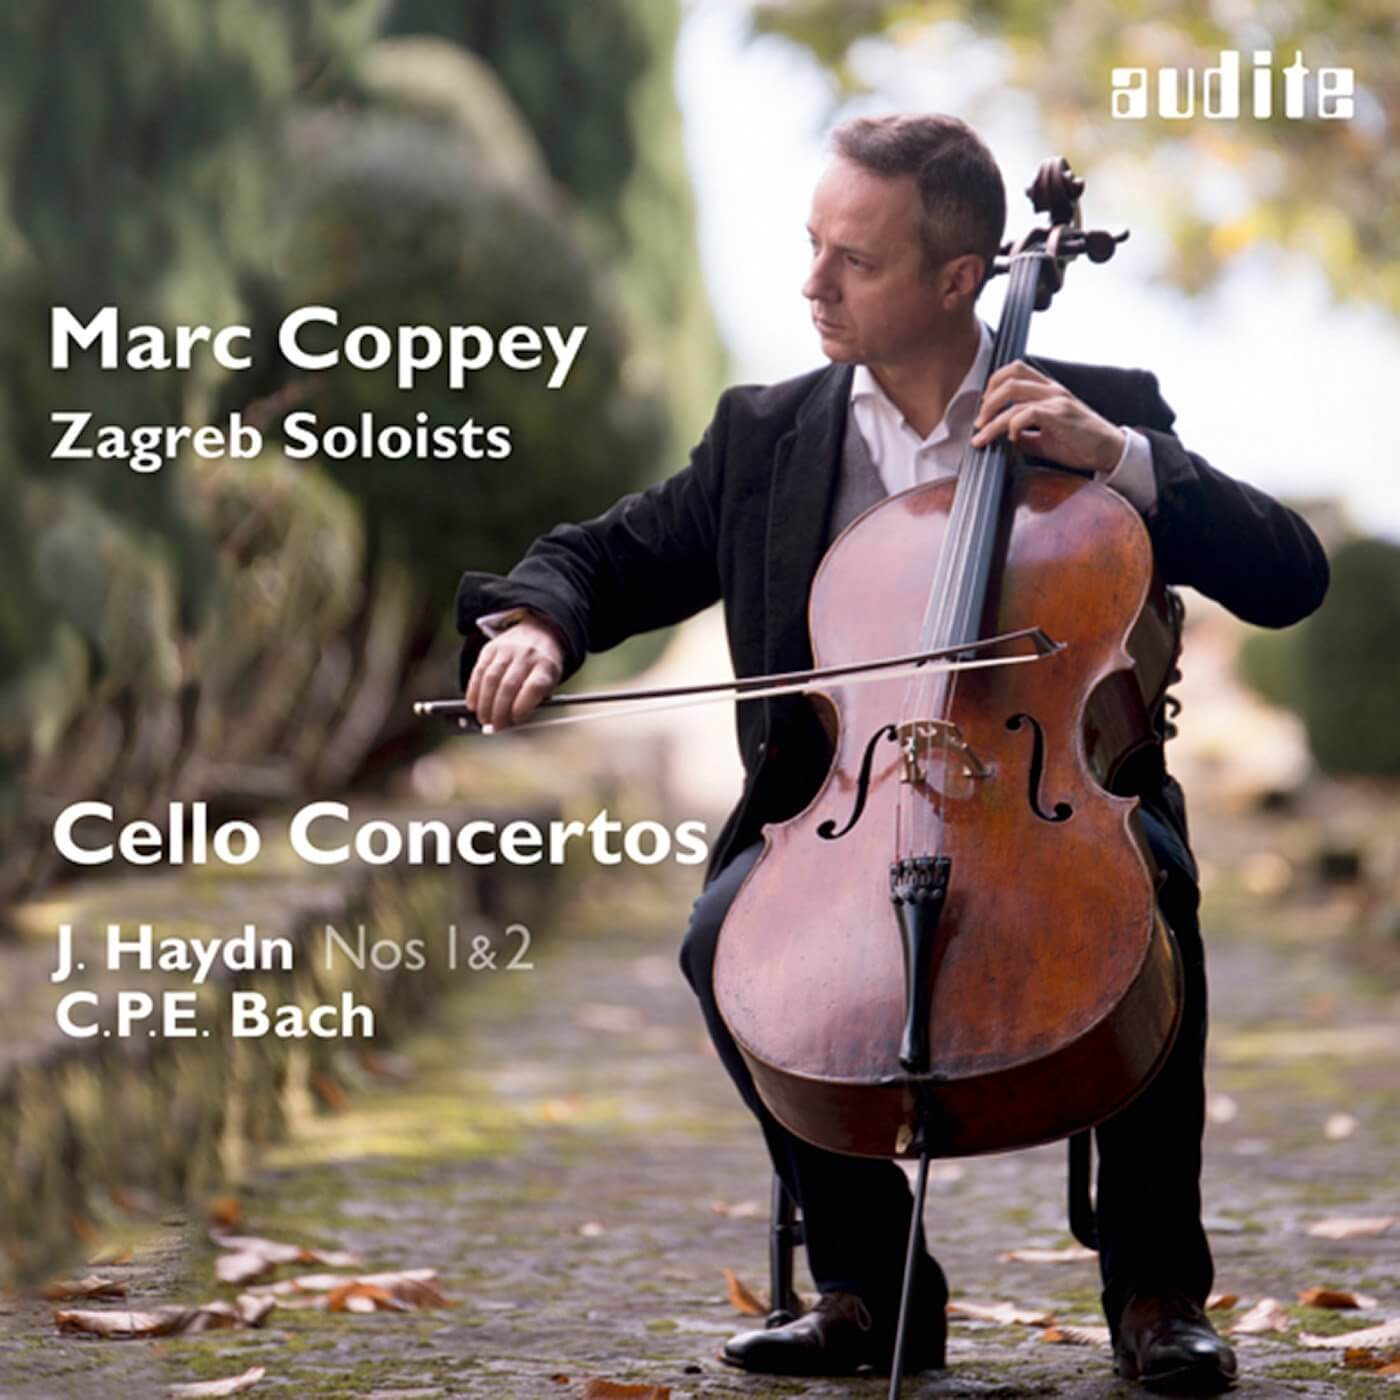 Zagrebacki solisti recent-discography Marc Coppey